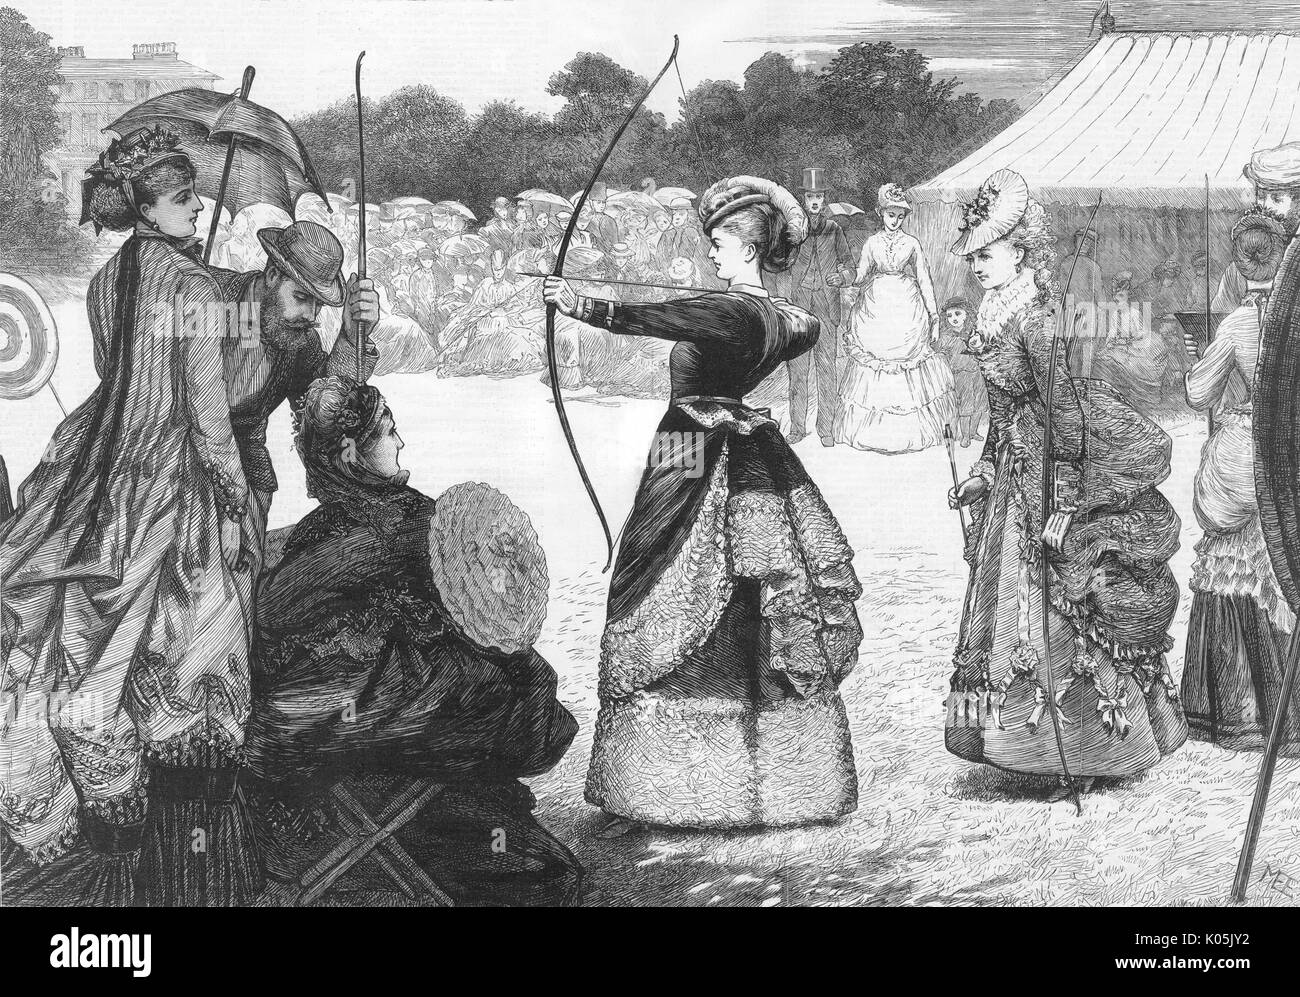 The Grand National archery  meeting is held at the  Shrublands, Leamington (Warwickshire)       Date: 1873 Stock Photo